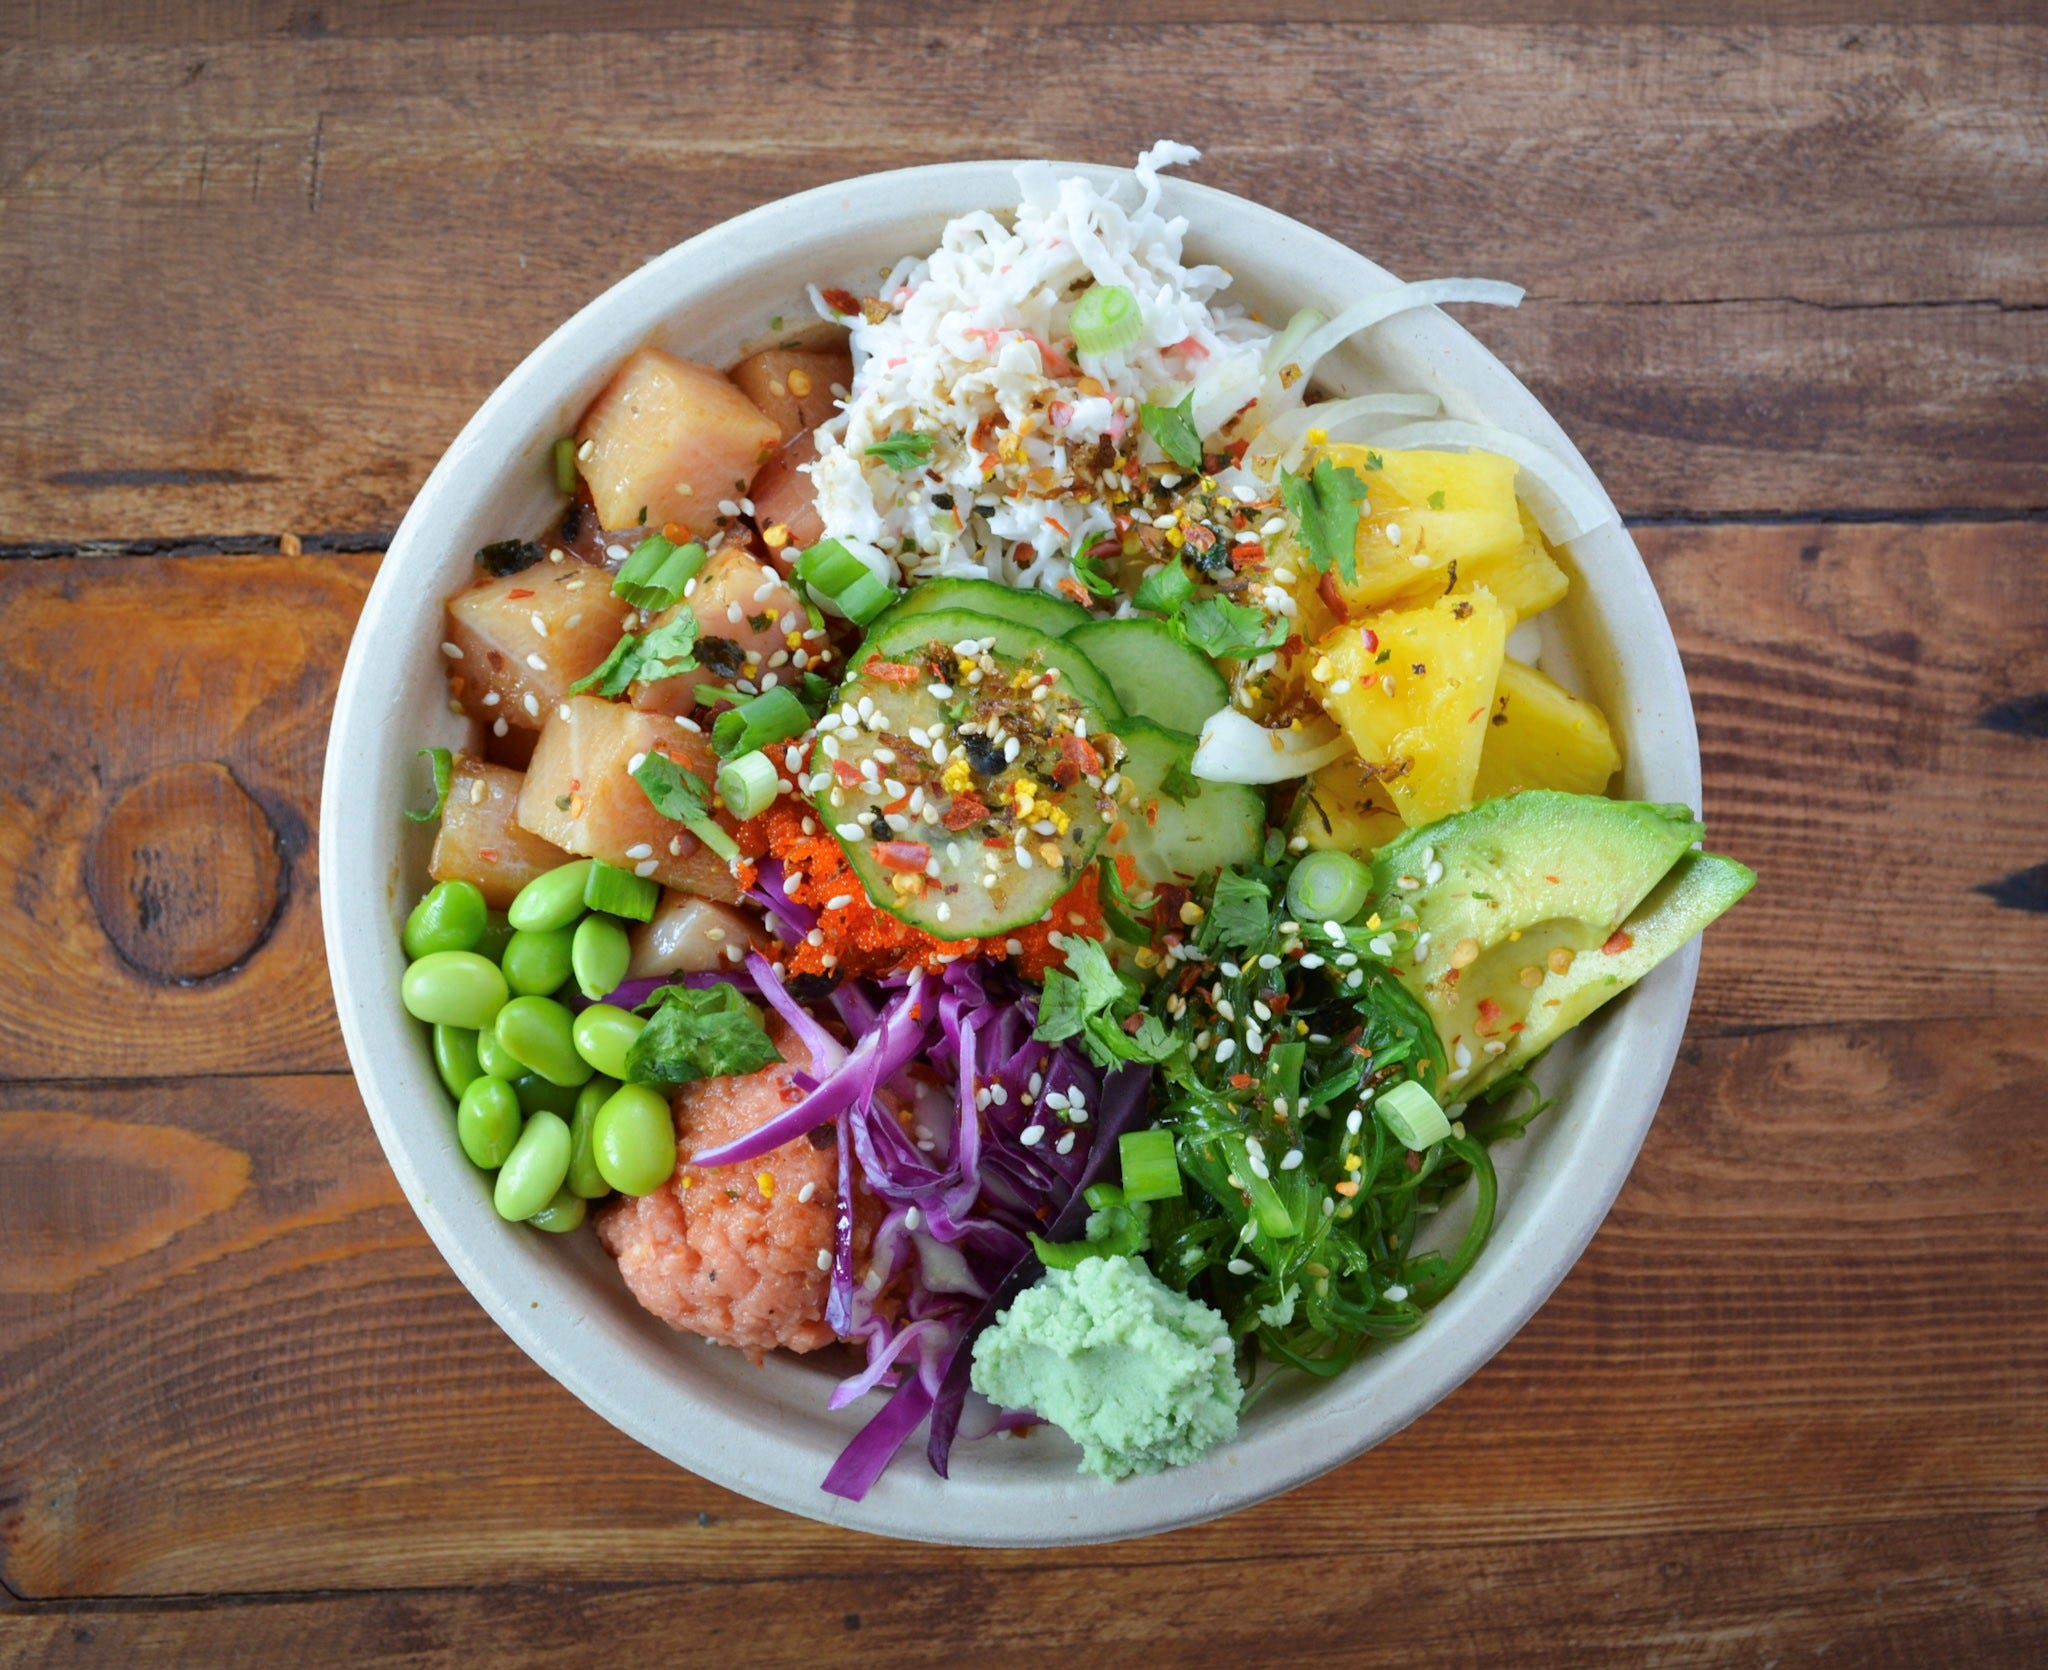 10 great places to try Hawaiian poke on the mainland | USA Today